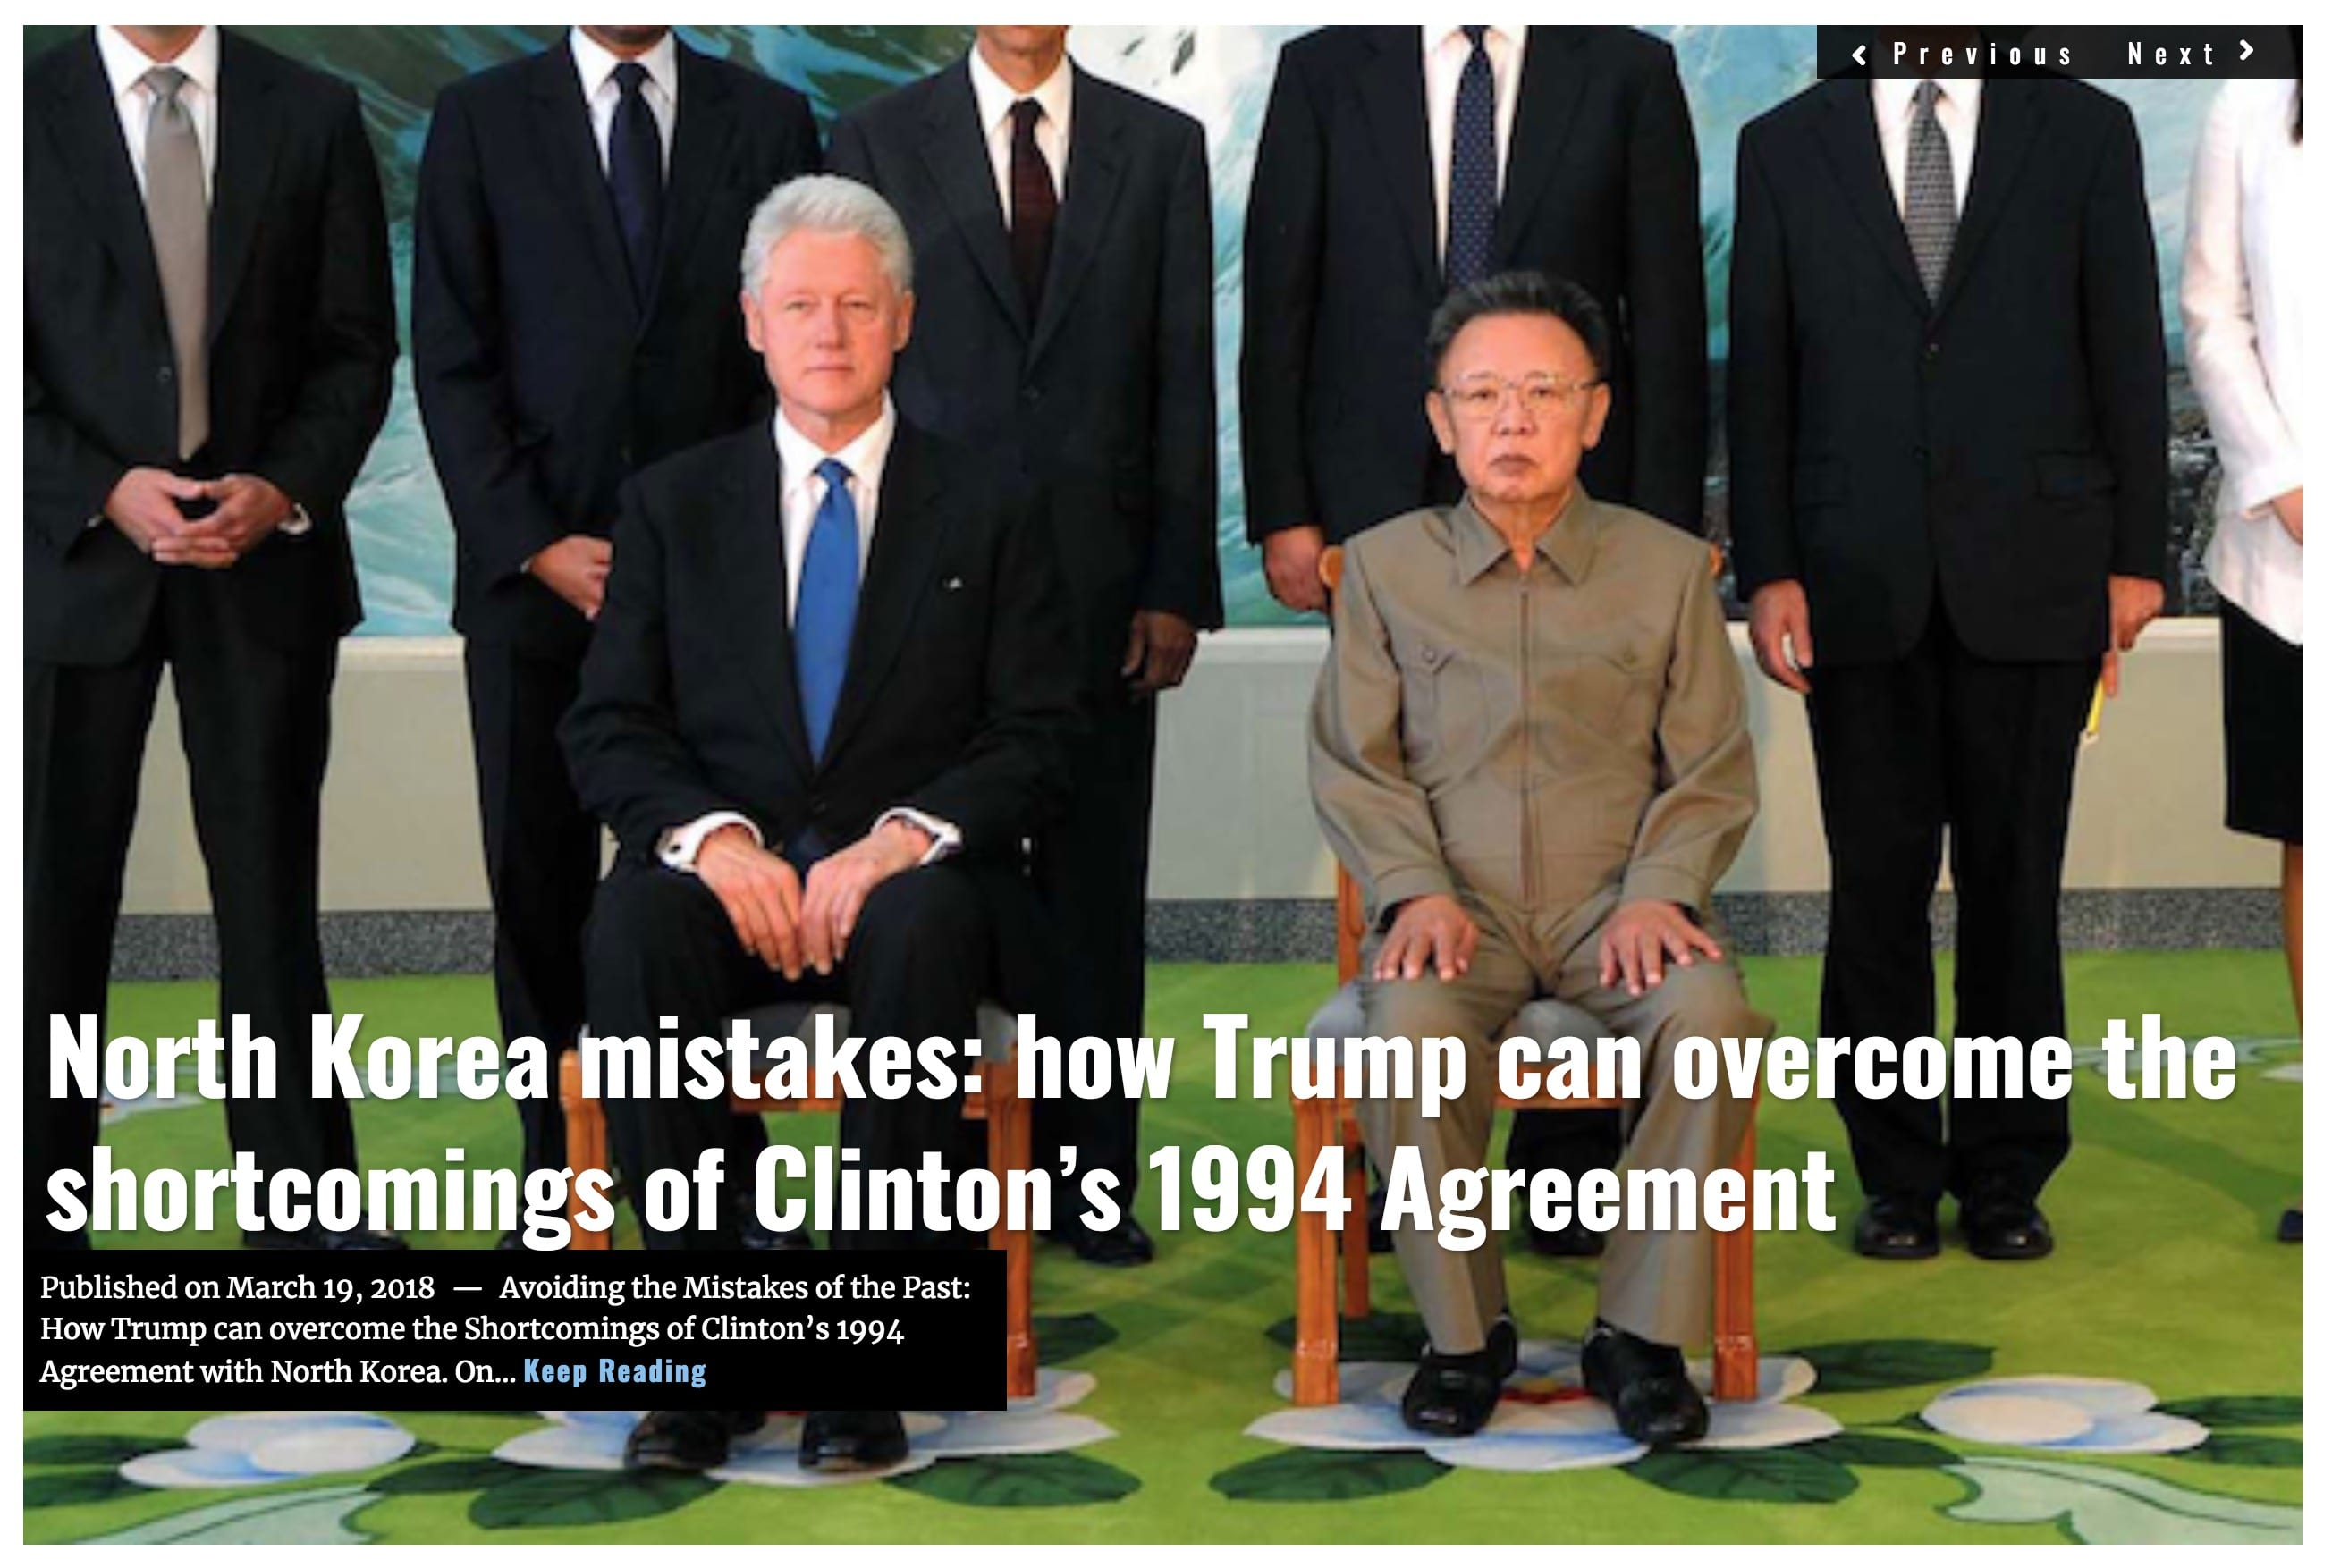 Image Lima Charlie News Headline North Korea Clinton mistakes MAR 19 2018